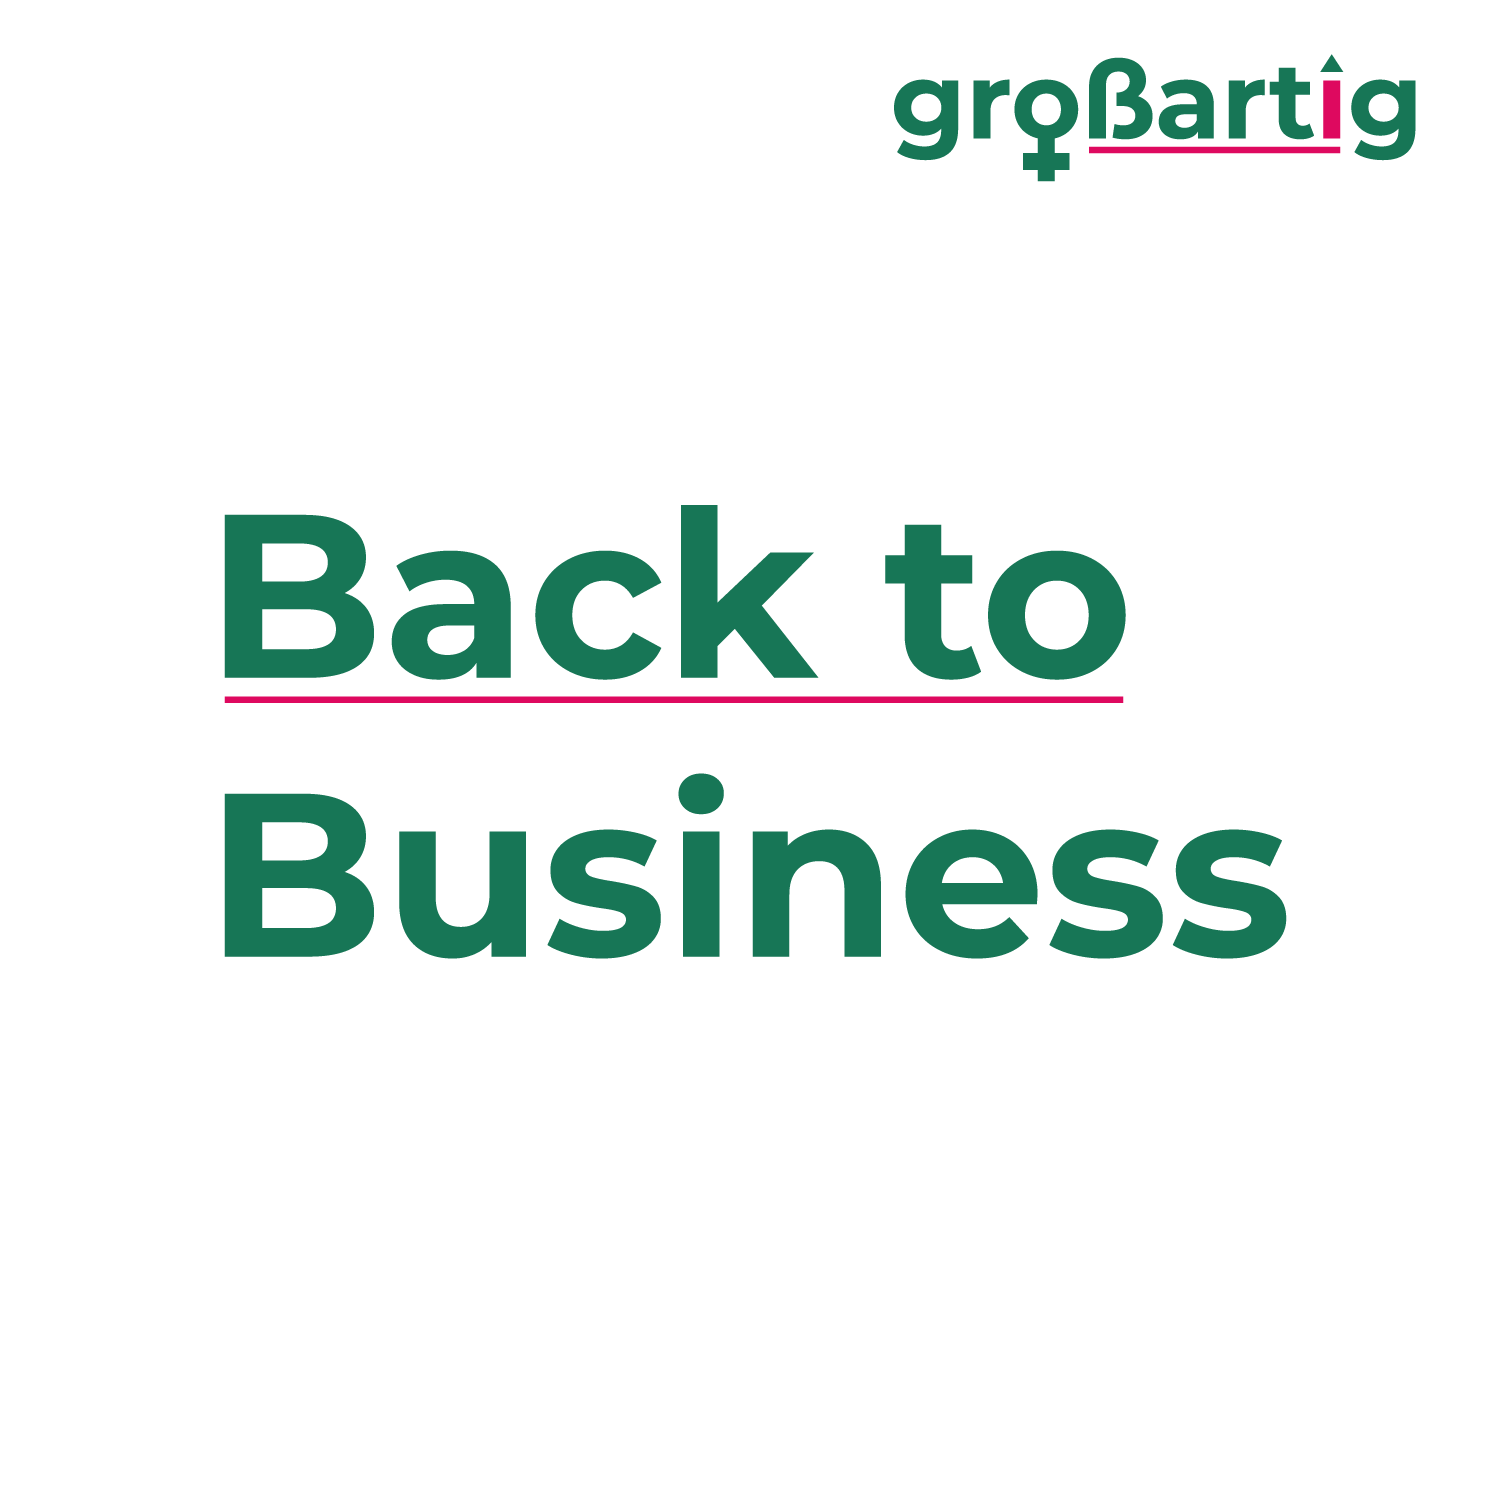 back to business - Tagesseminar - Bielefeld - Seminar:  20.08.2022